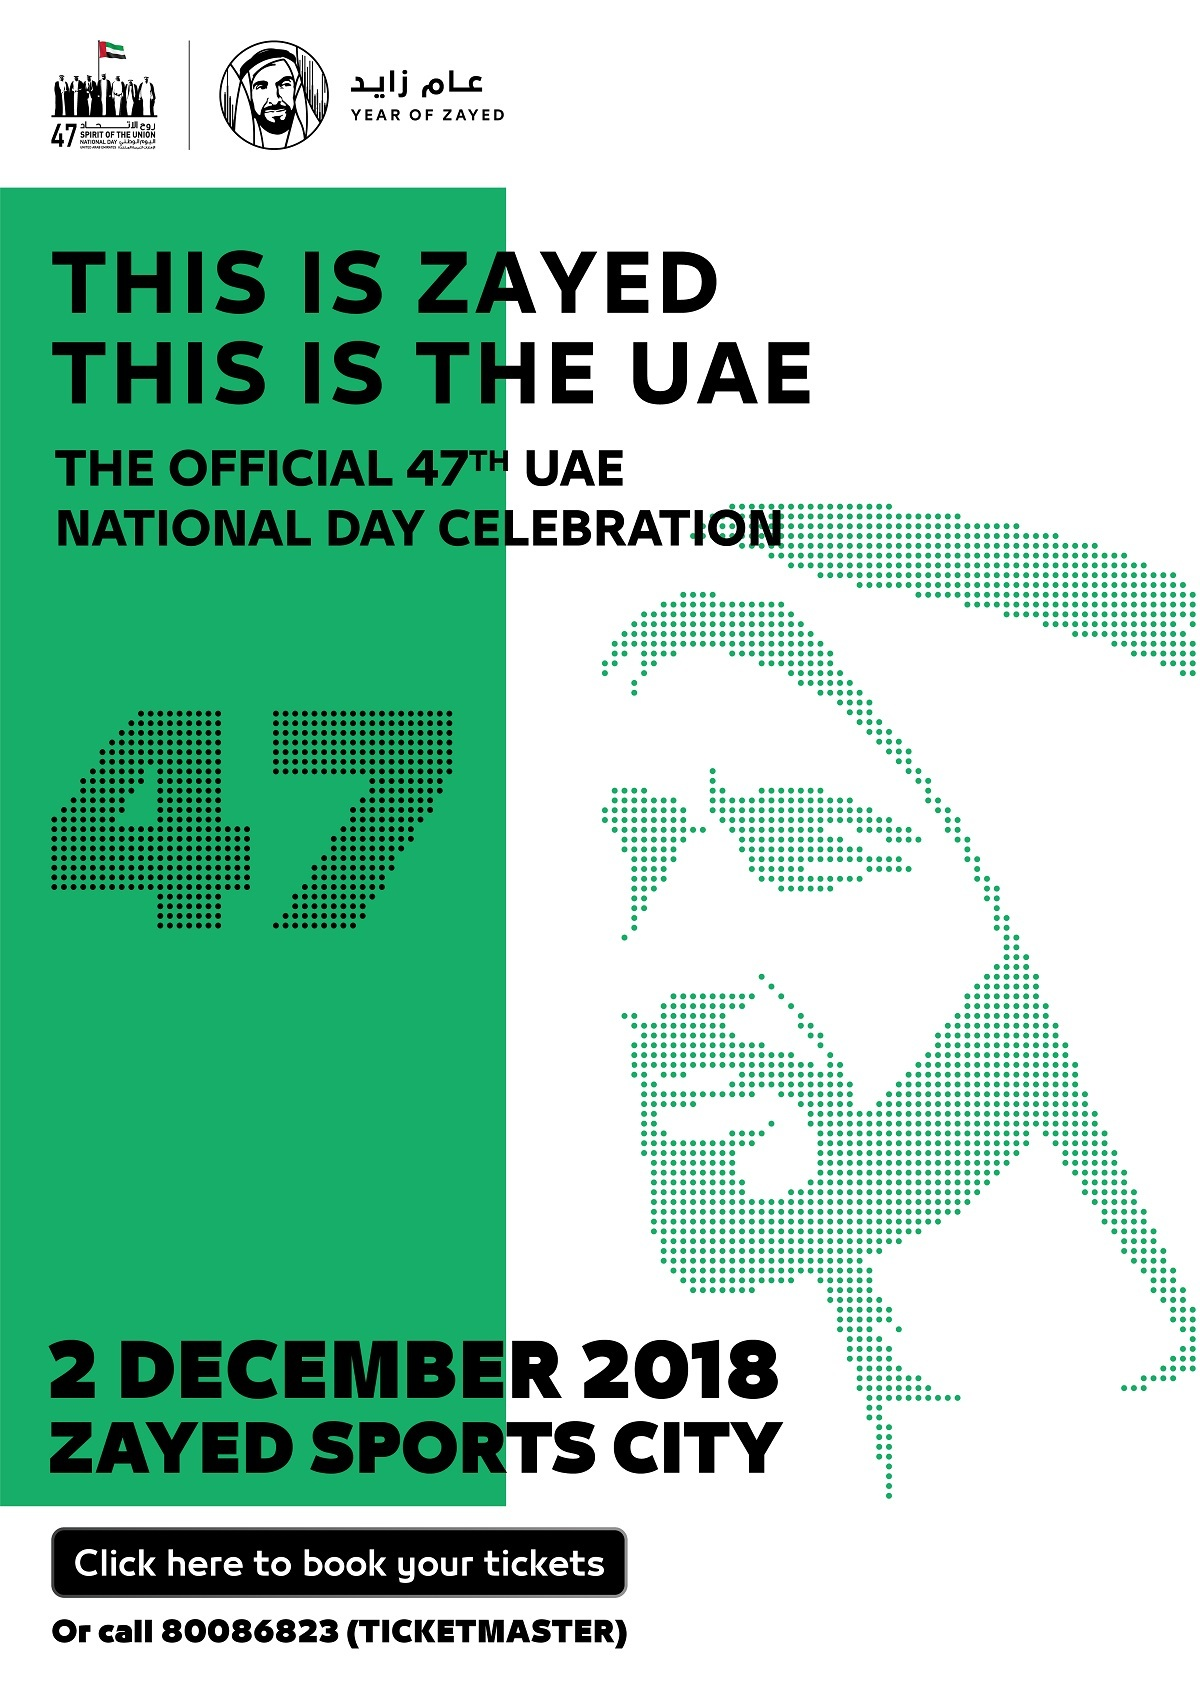 This is Zayed. This is the UAE. The Official 47th UAE National Day Celebration